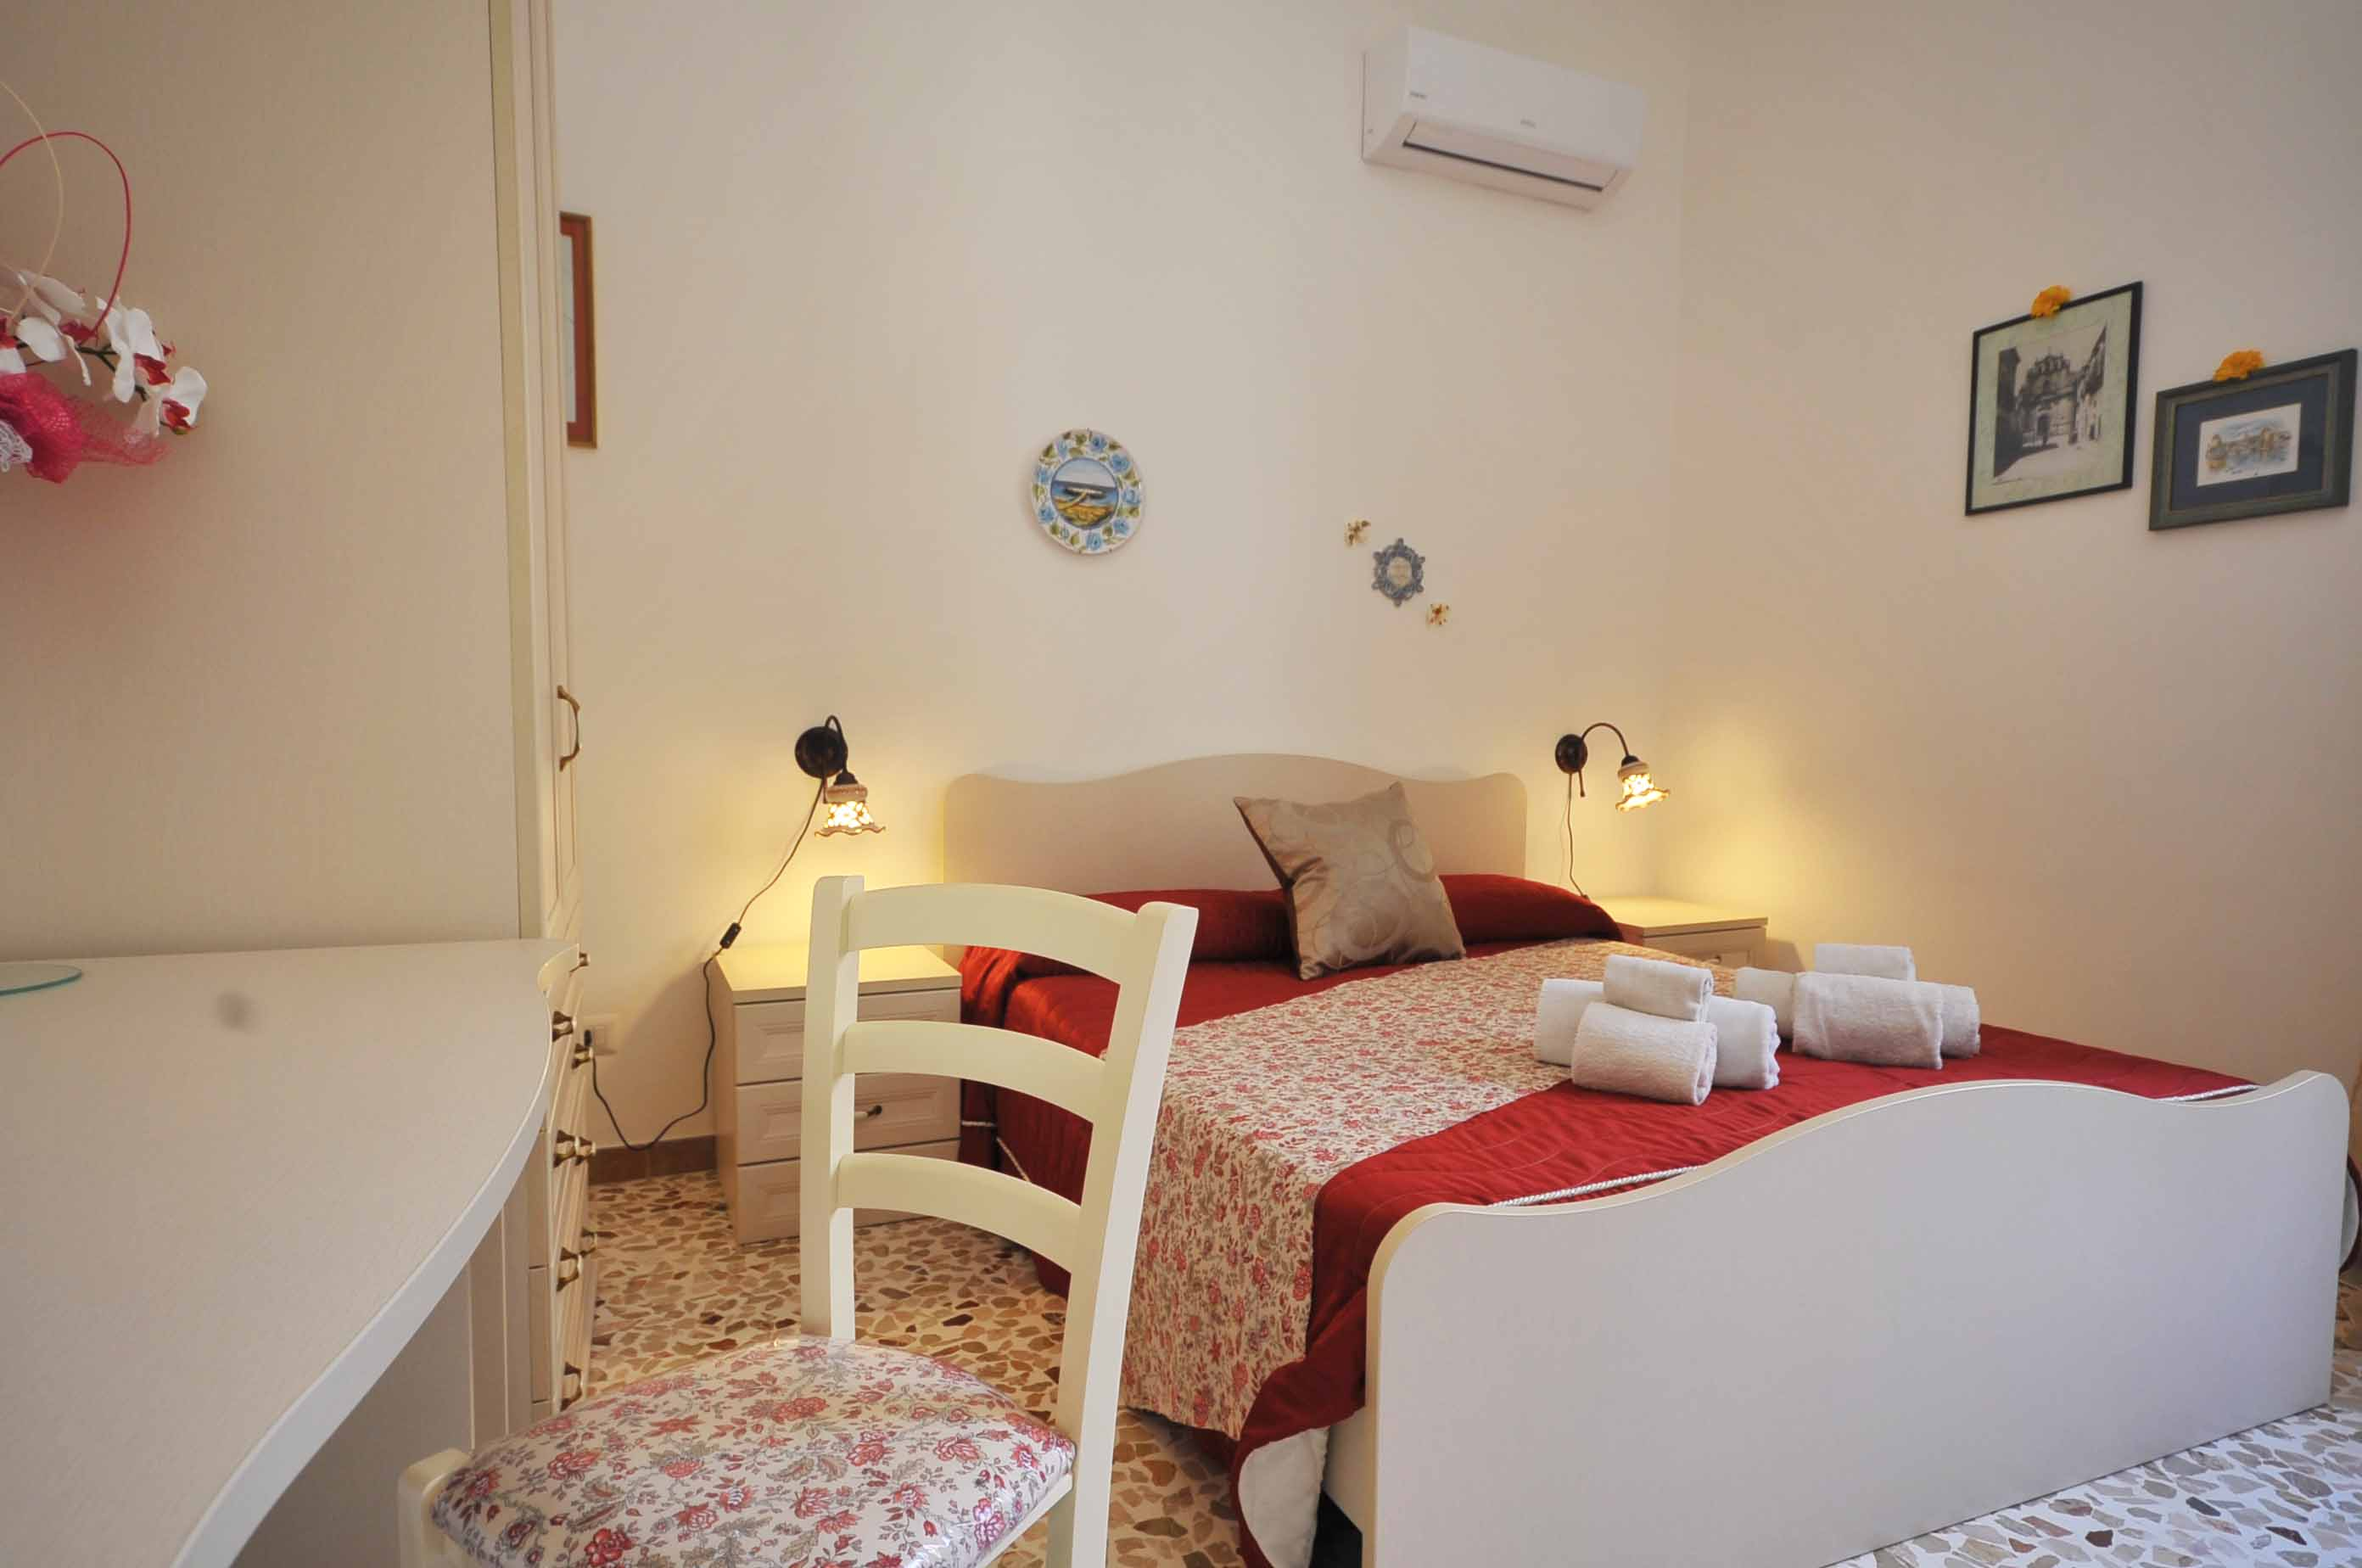 Athena_camera_familiare_B&B_Avola_siracusa_bed_and_breakfast_4